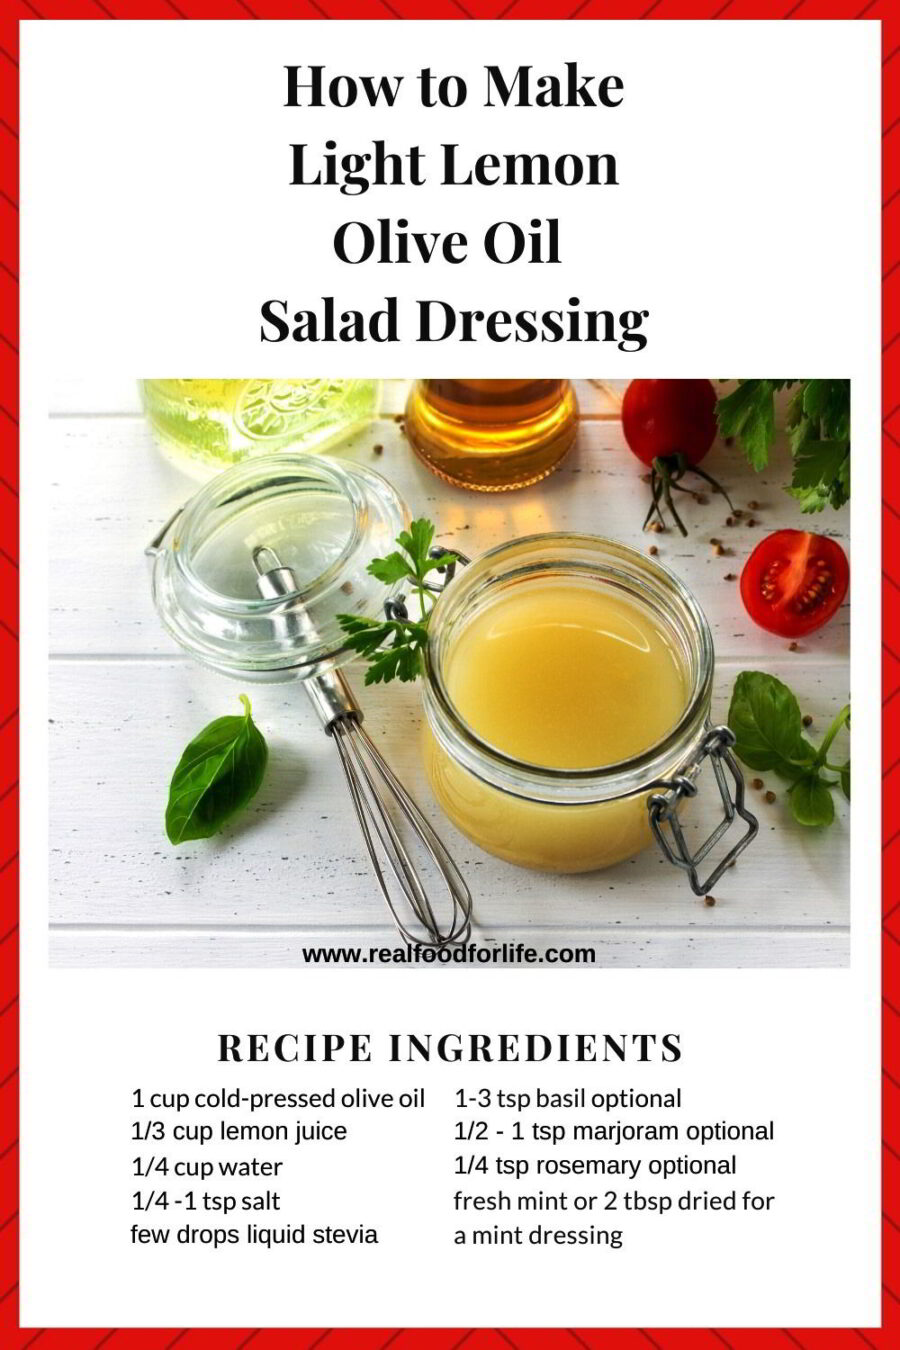 Olive Oil Salad Dressing